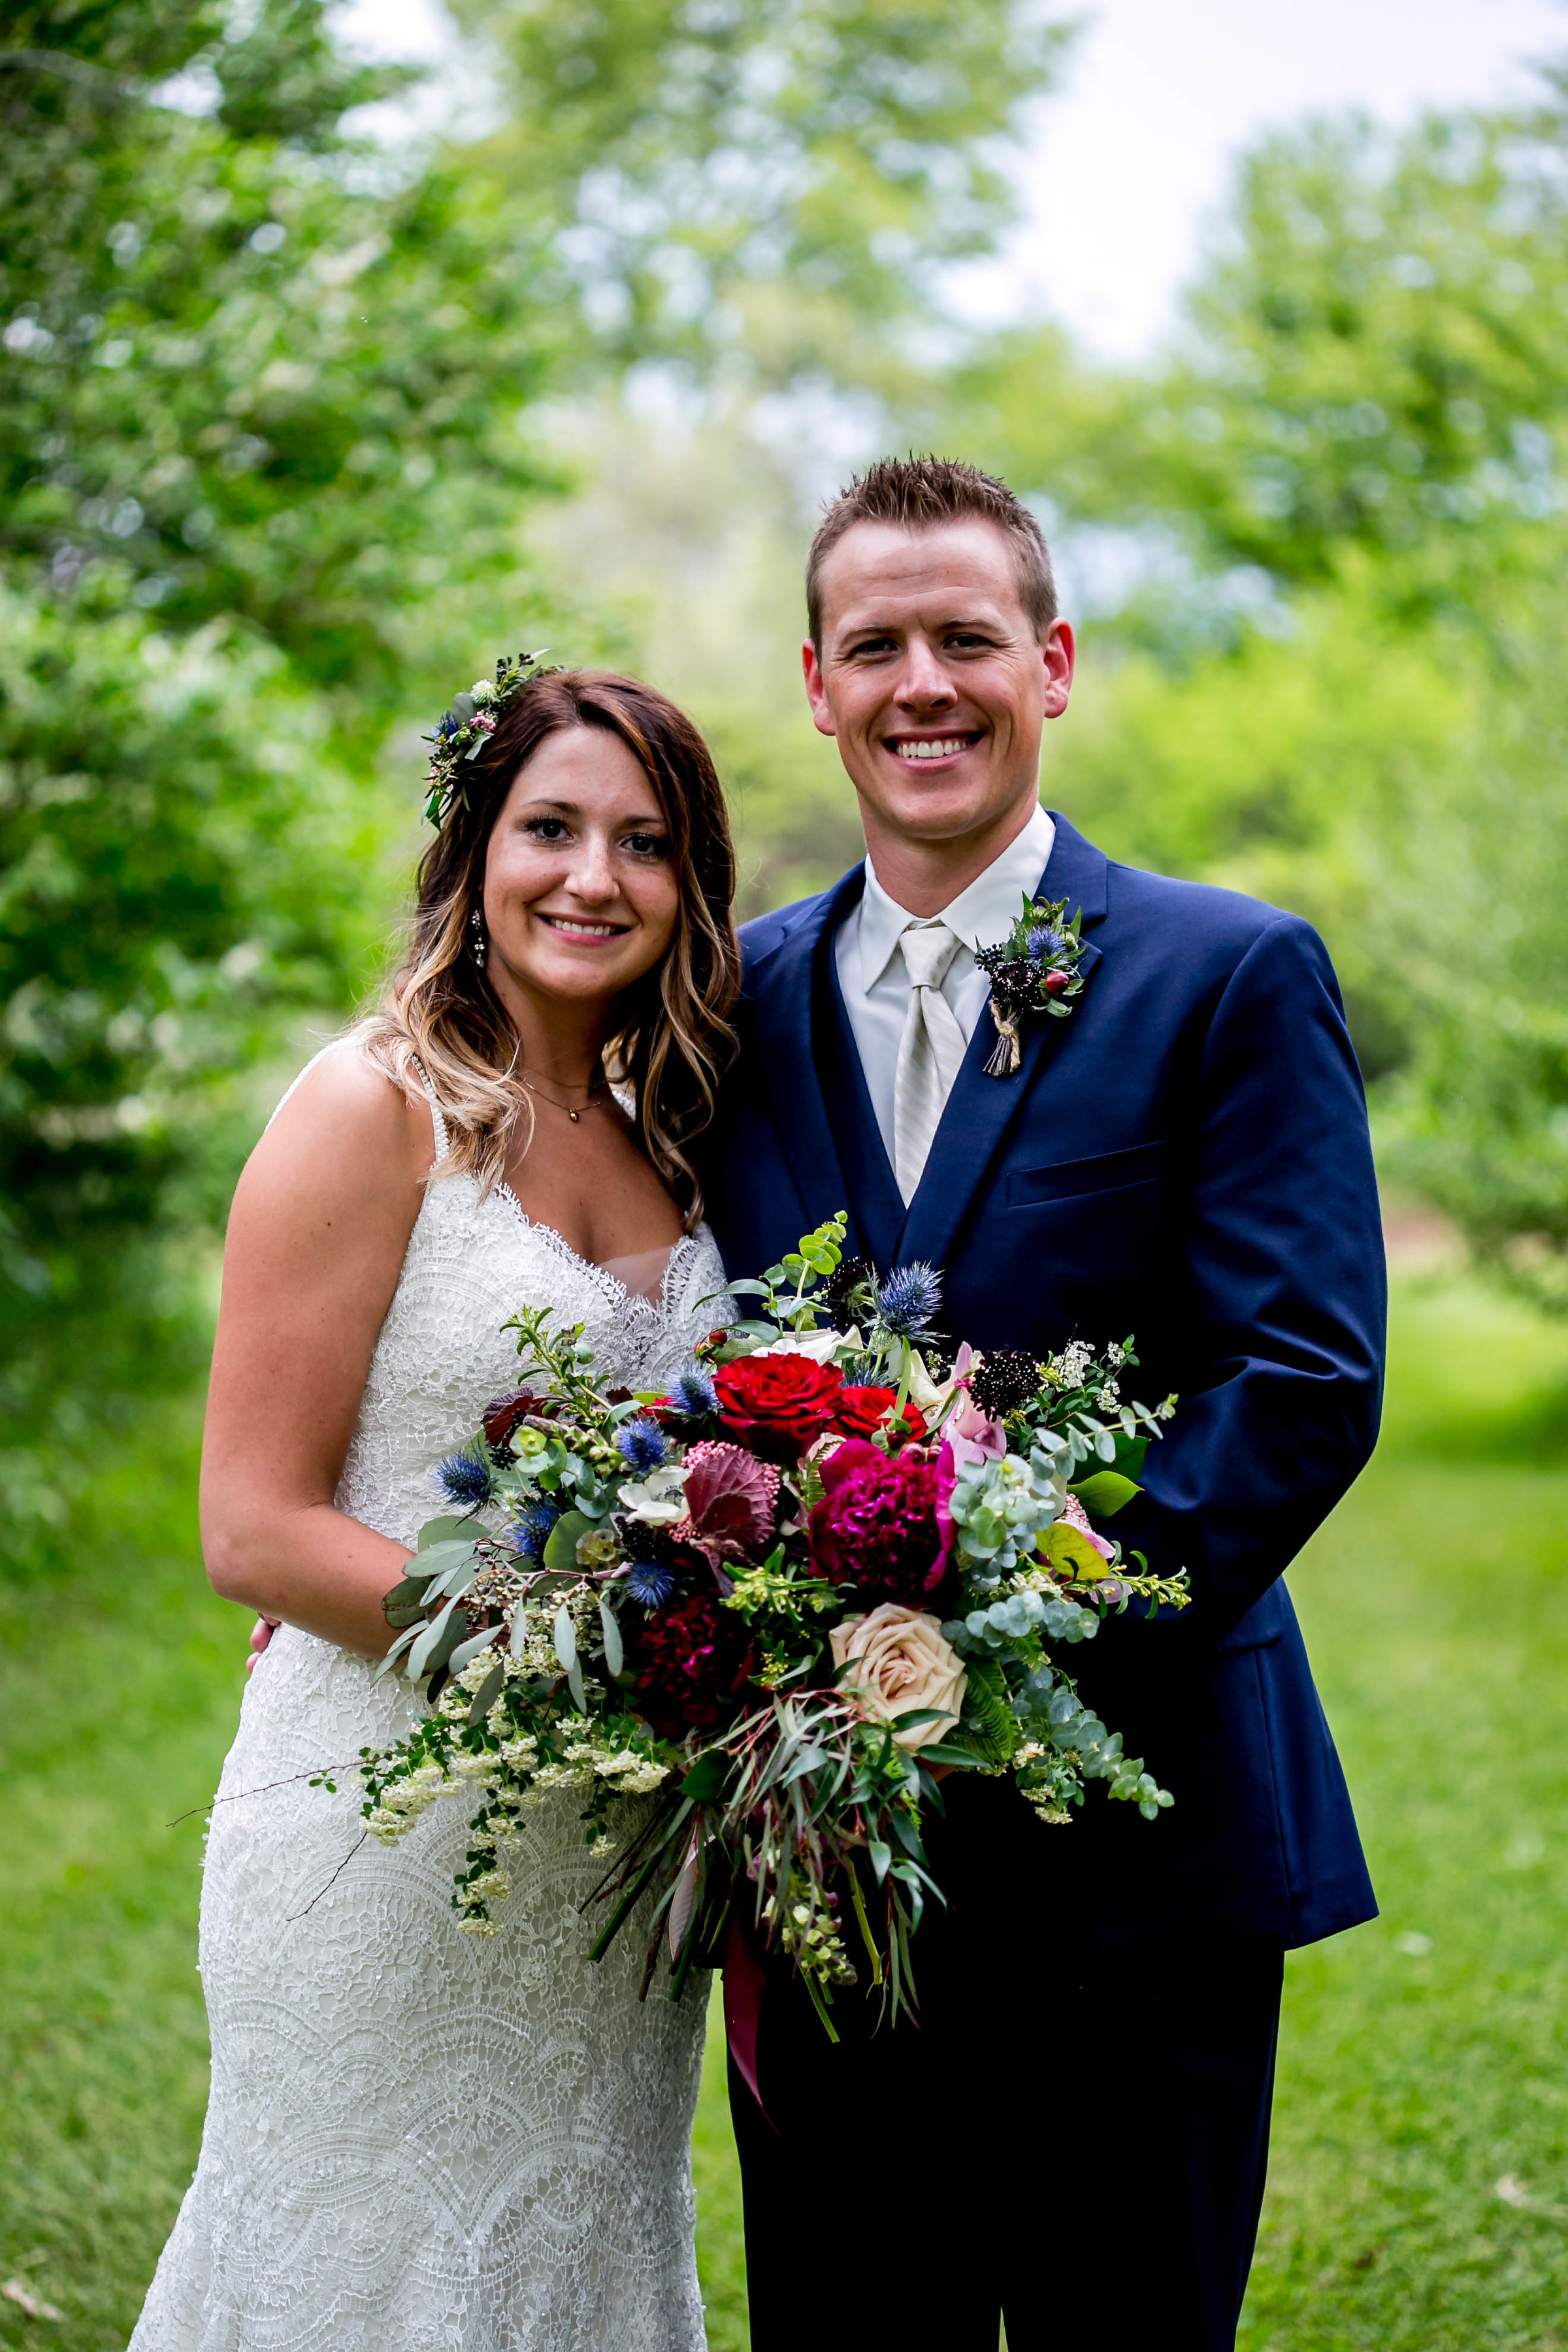 """Ellie + Josh - """"We can't thank Maggie enough for her beautiful work on our flowers! Everything turned out better than we could have imagined thanks to her talent!"""" - Ellie S.[Michelle White Photography - 2018]"""